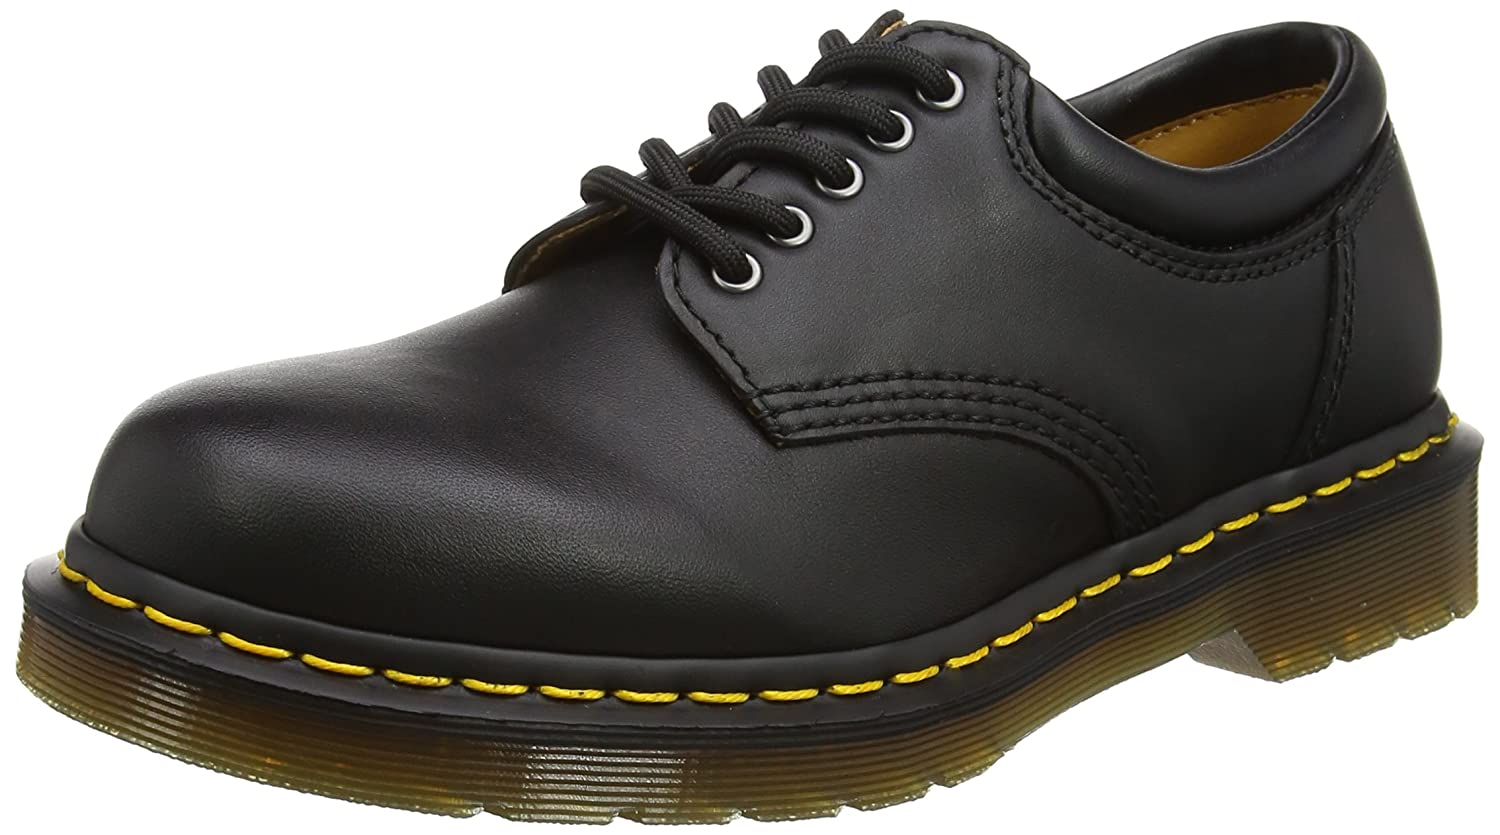 Dr. Martens unisex-adult 8053 5 Eye Padded Collar Boot B001VUGY3A 12 UK/13 M US|Black